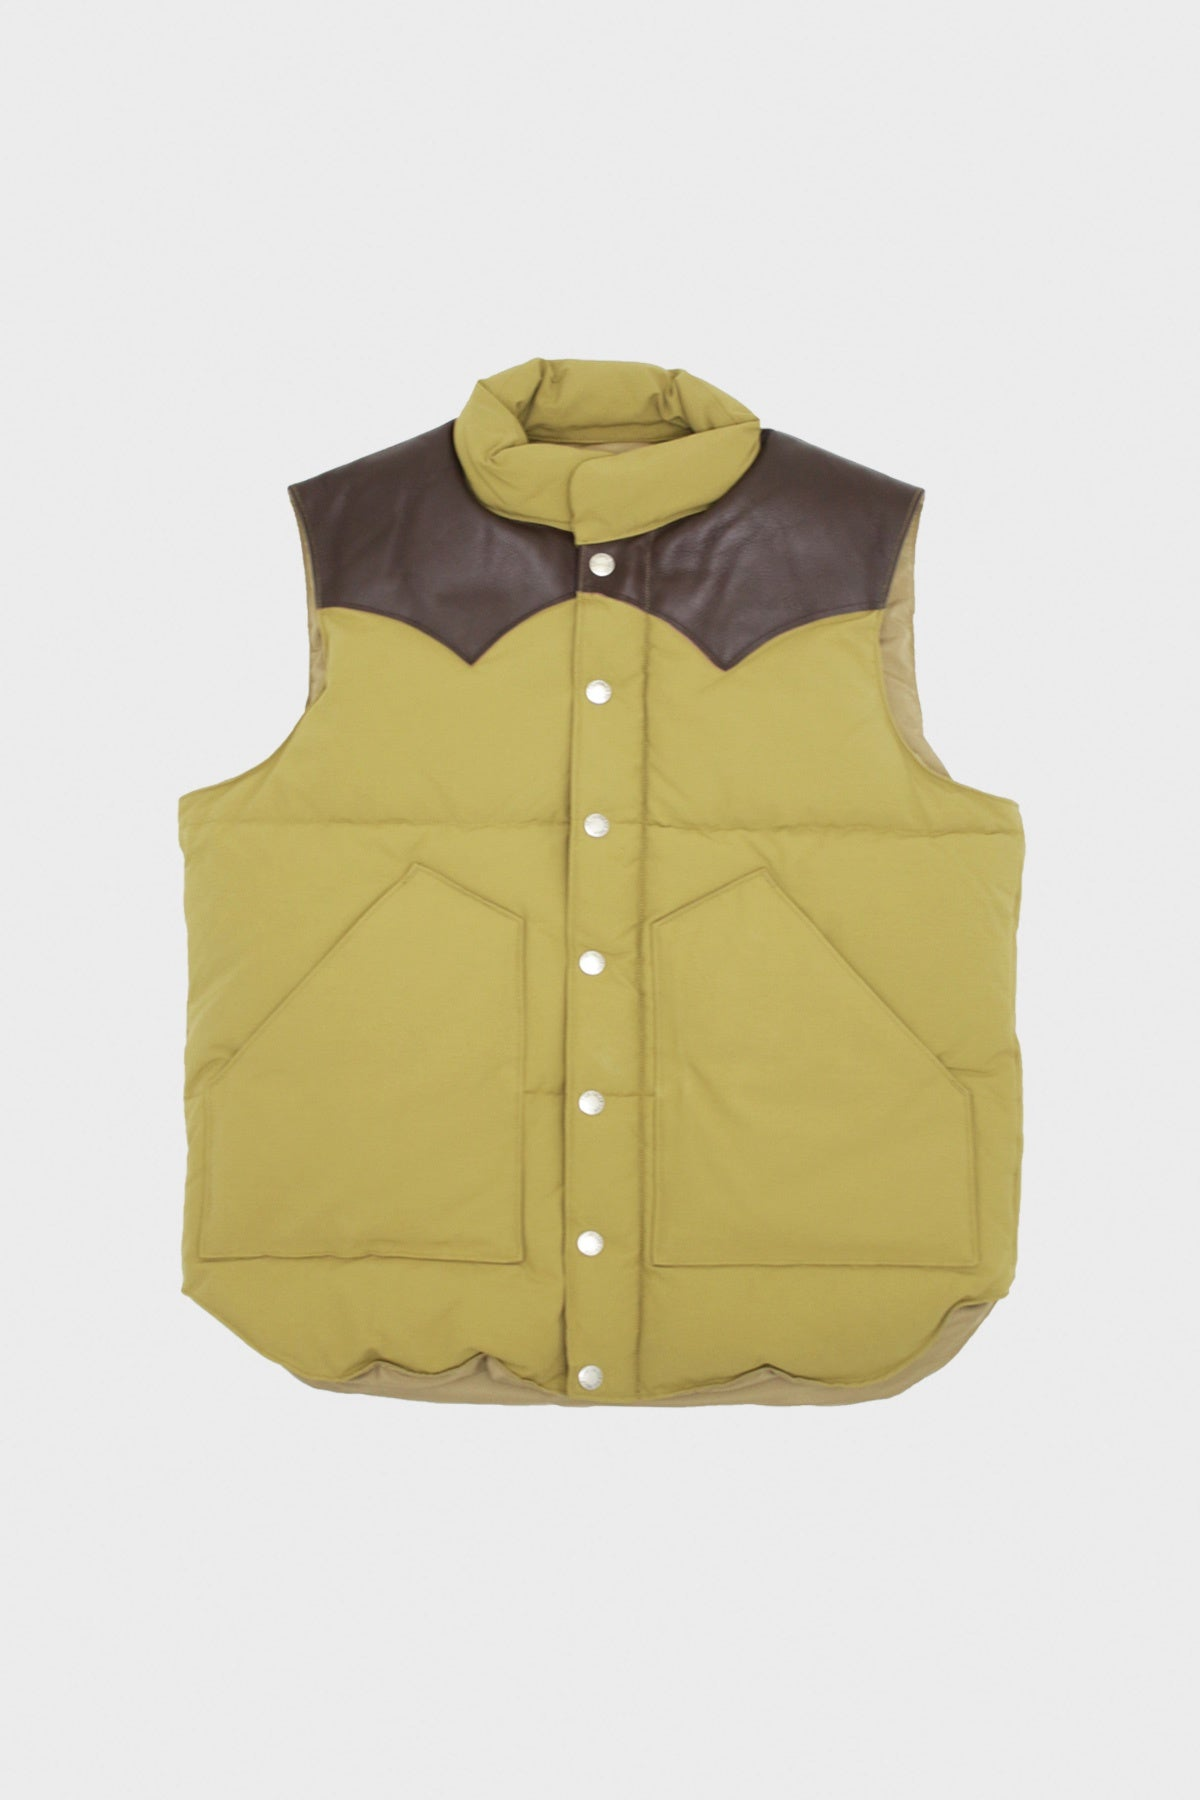 Sugar Cane - Leather Yoke Down Vest - Brown - Canoe Club